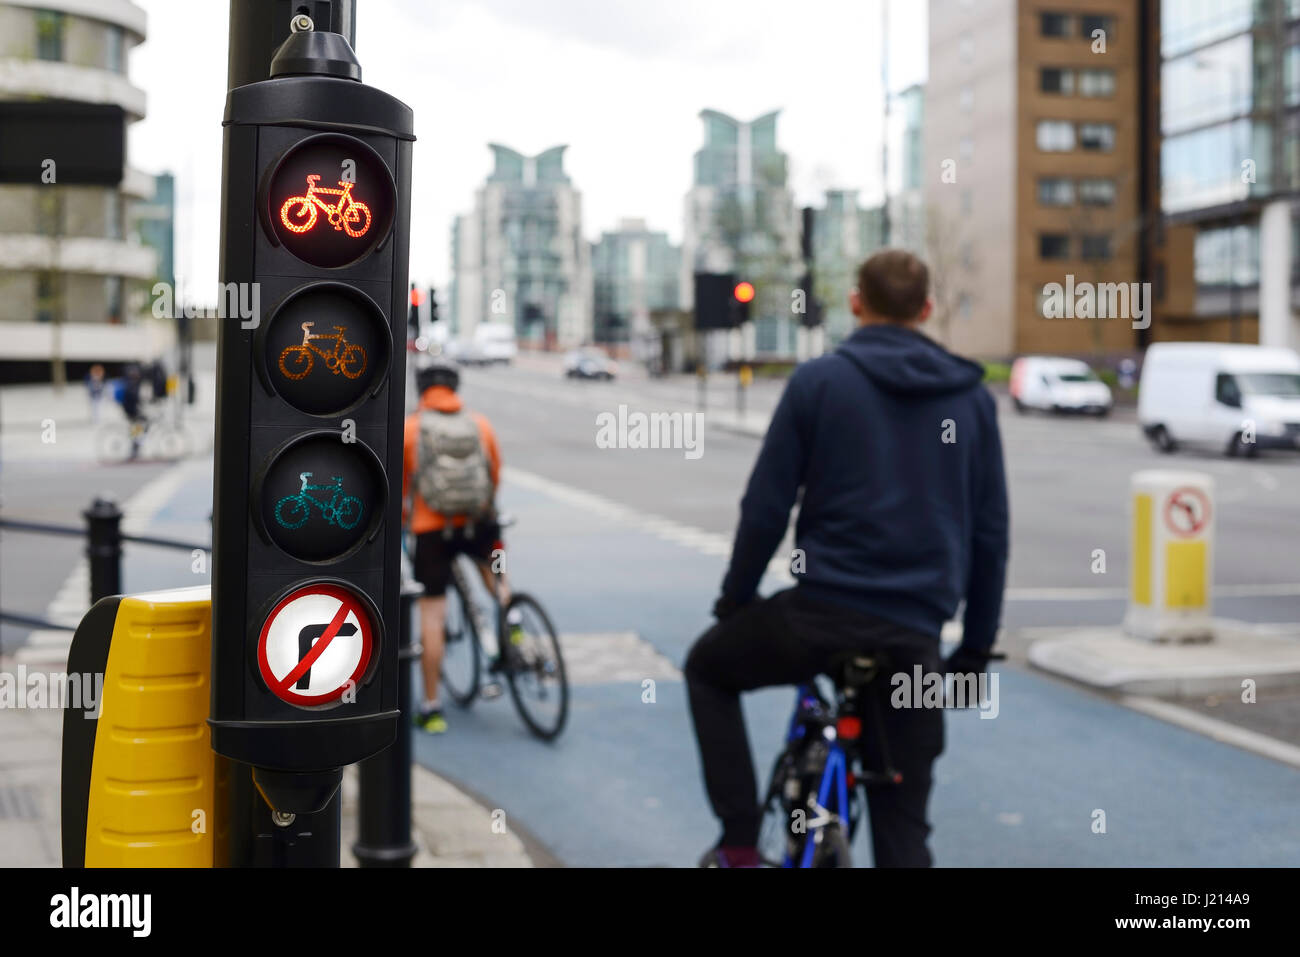 Cyclists wait at the red traffic light for a bike lane in central London UK - Stock Image